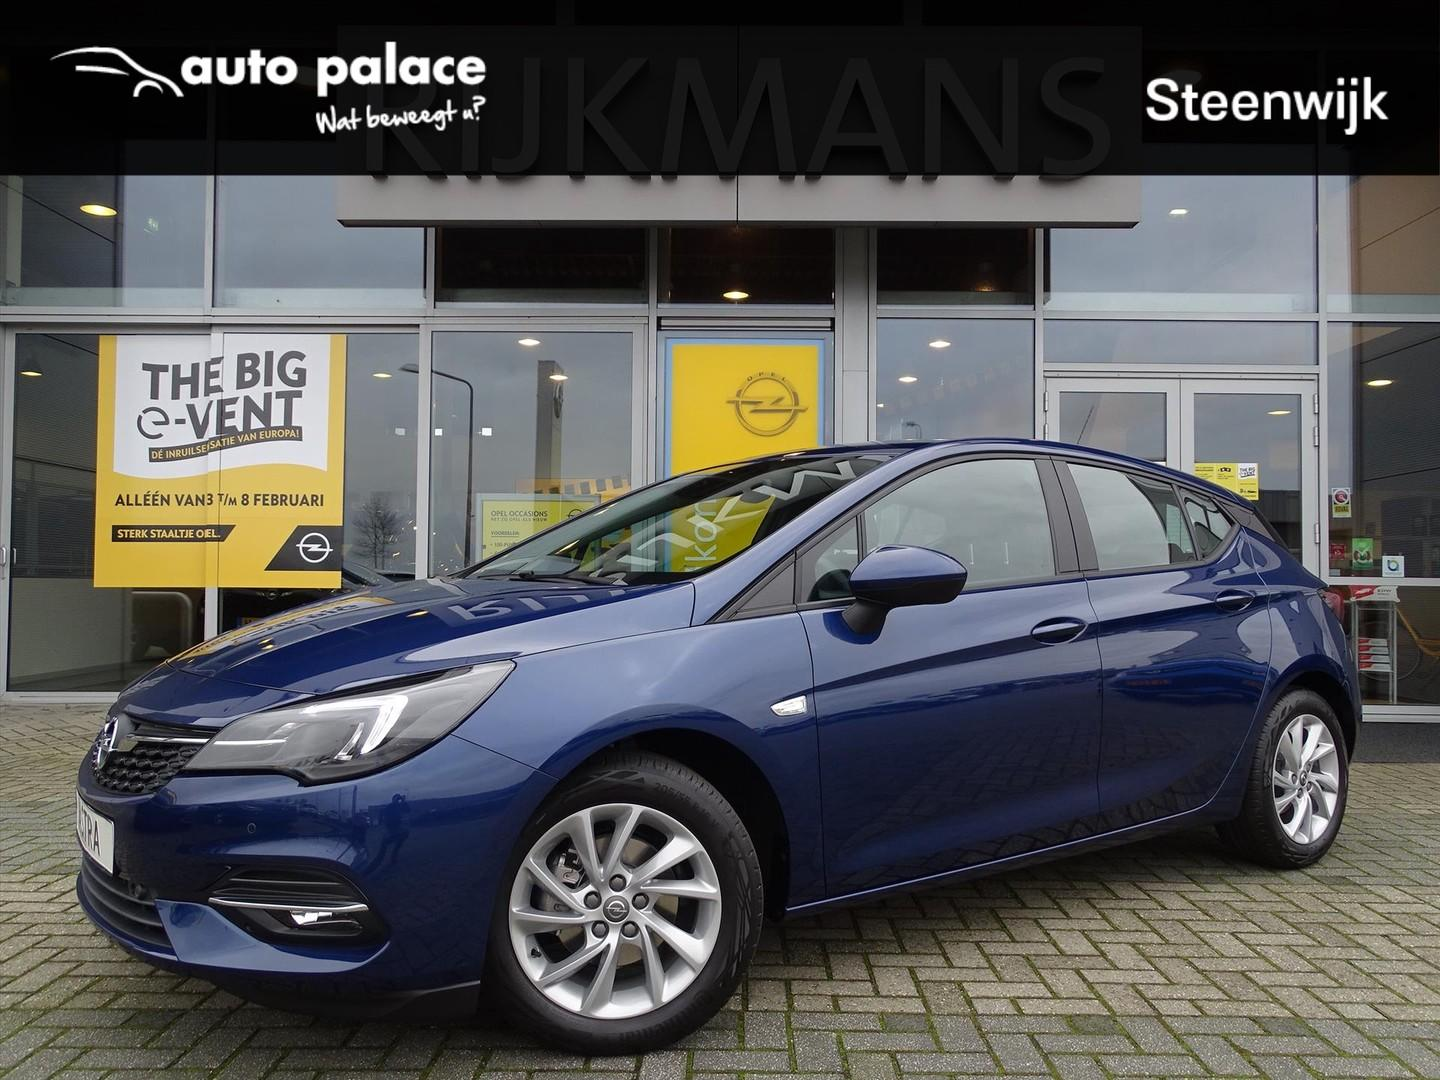 Opel Astra Edition 1.2t 130 pk - edition+ pack - led - multimedia navi - climate - cruise - parkpilot - camera